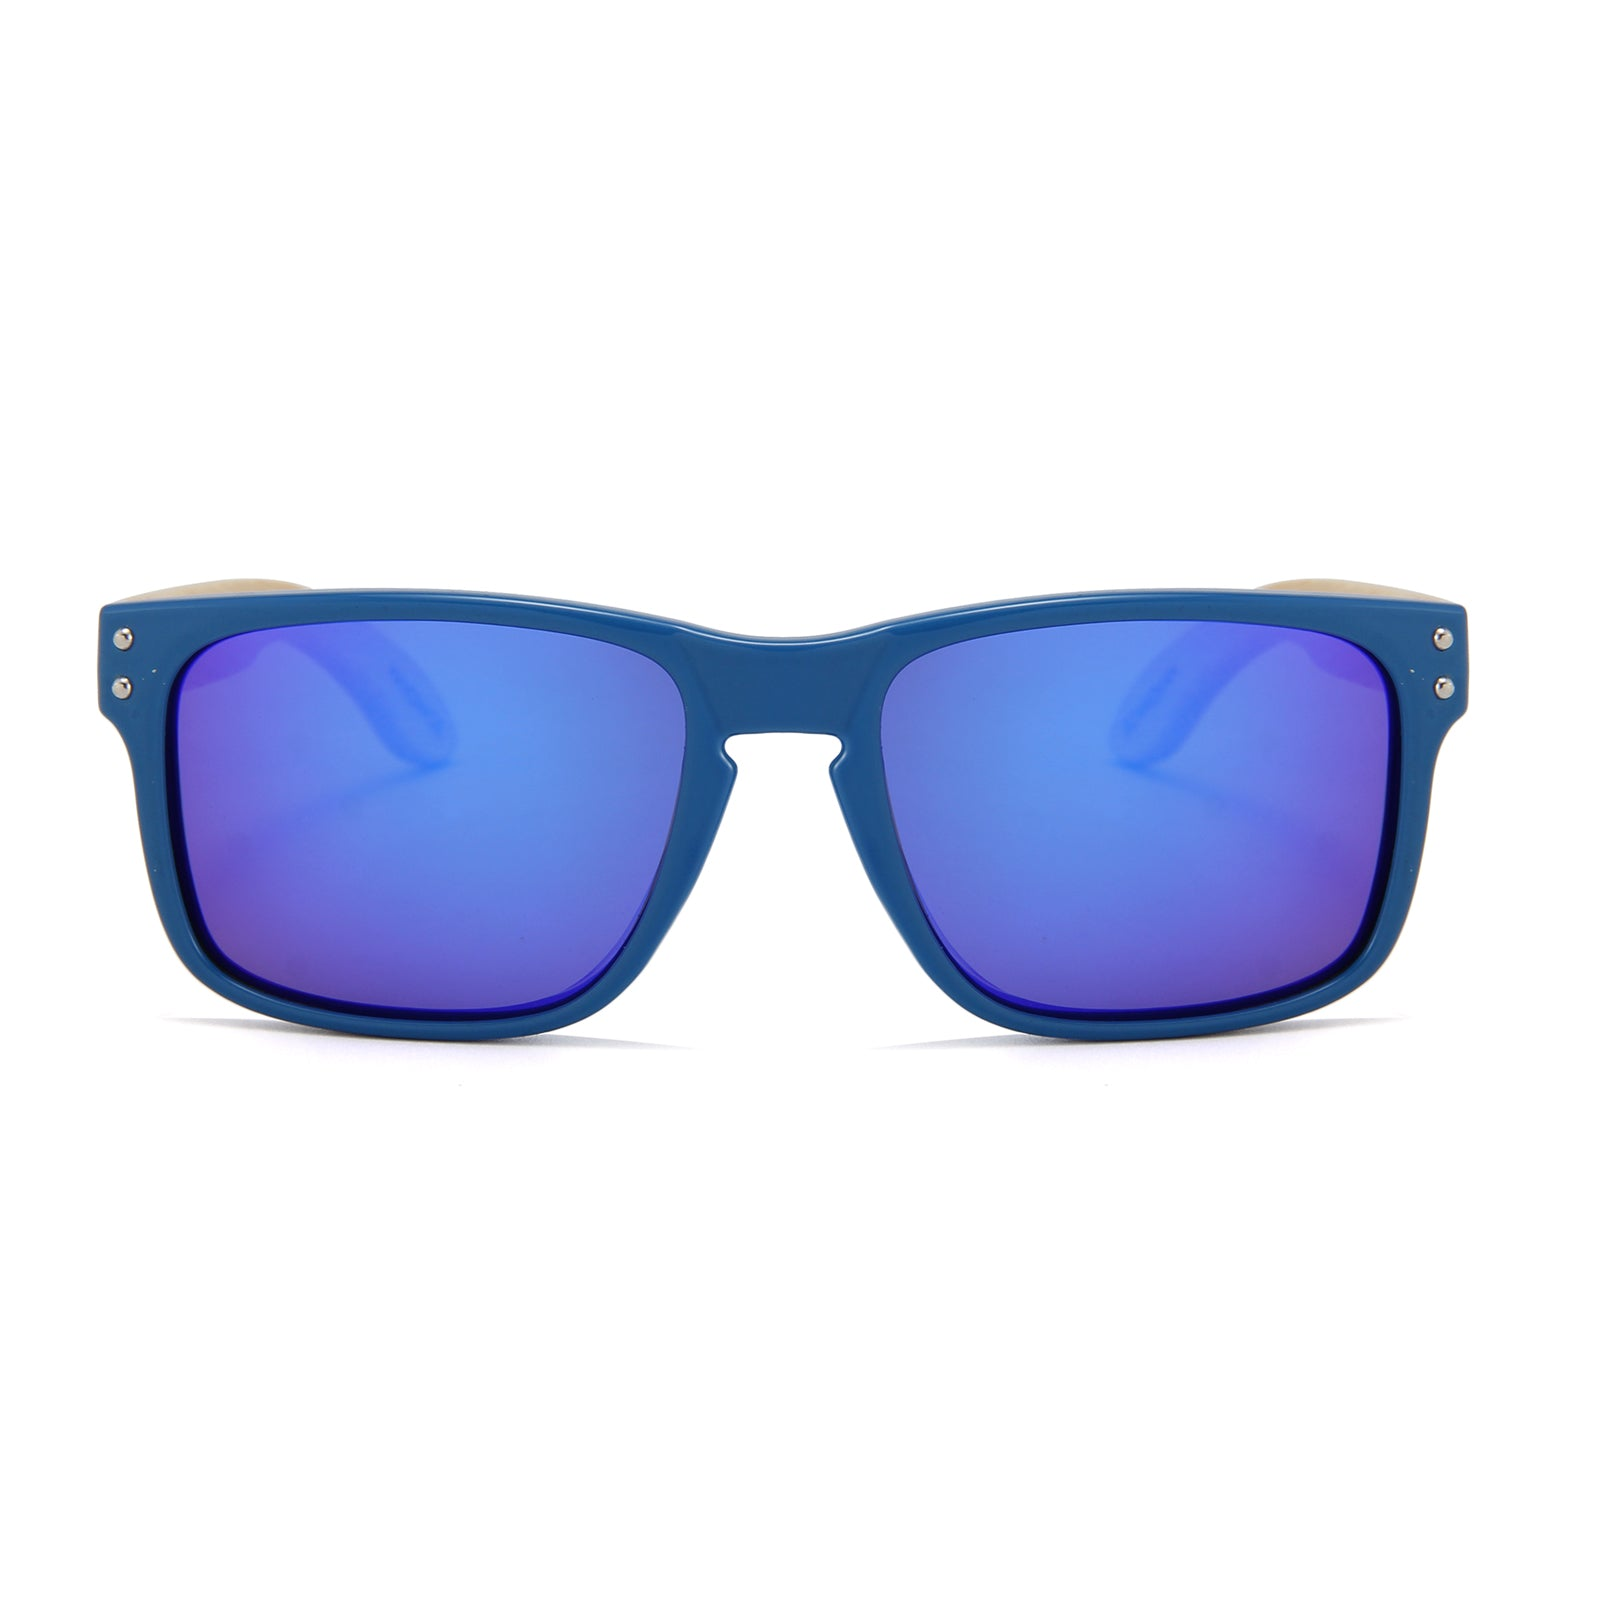 Bamboo Temple Sunglasses (Blue with Blue REVO Lens)